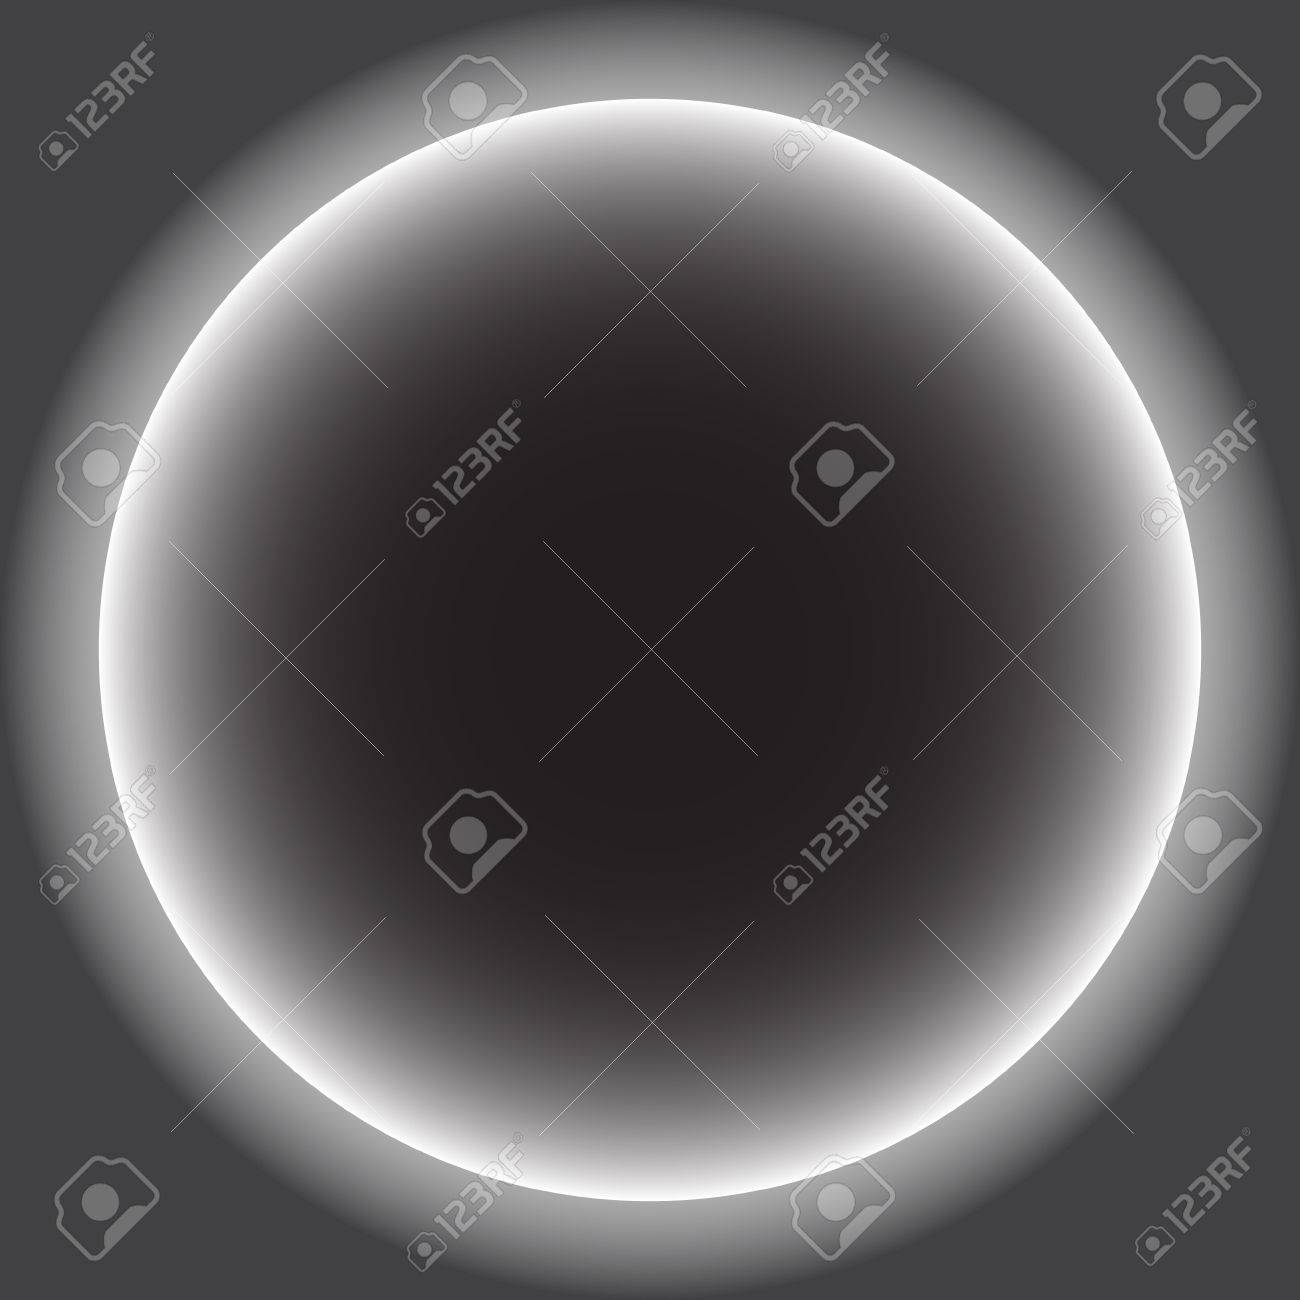 Gray Circle With White Halo Solar Eclipse Vector Illustration Royalty Free Cliparts Vectors And Stock Illustration Image 84346826